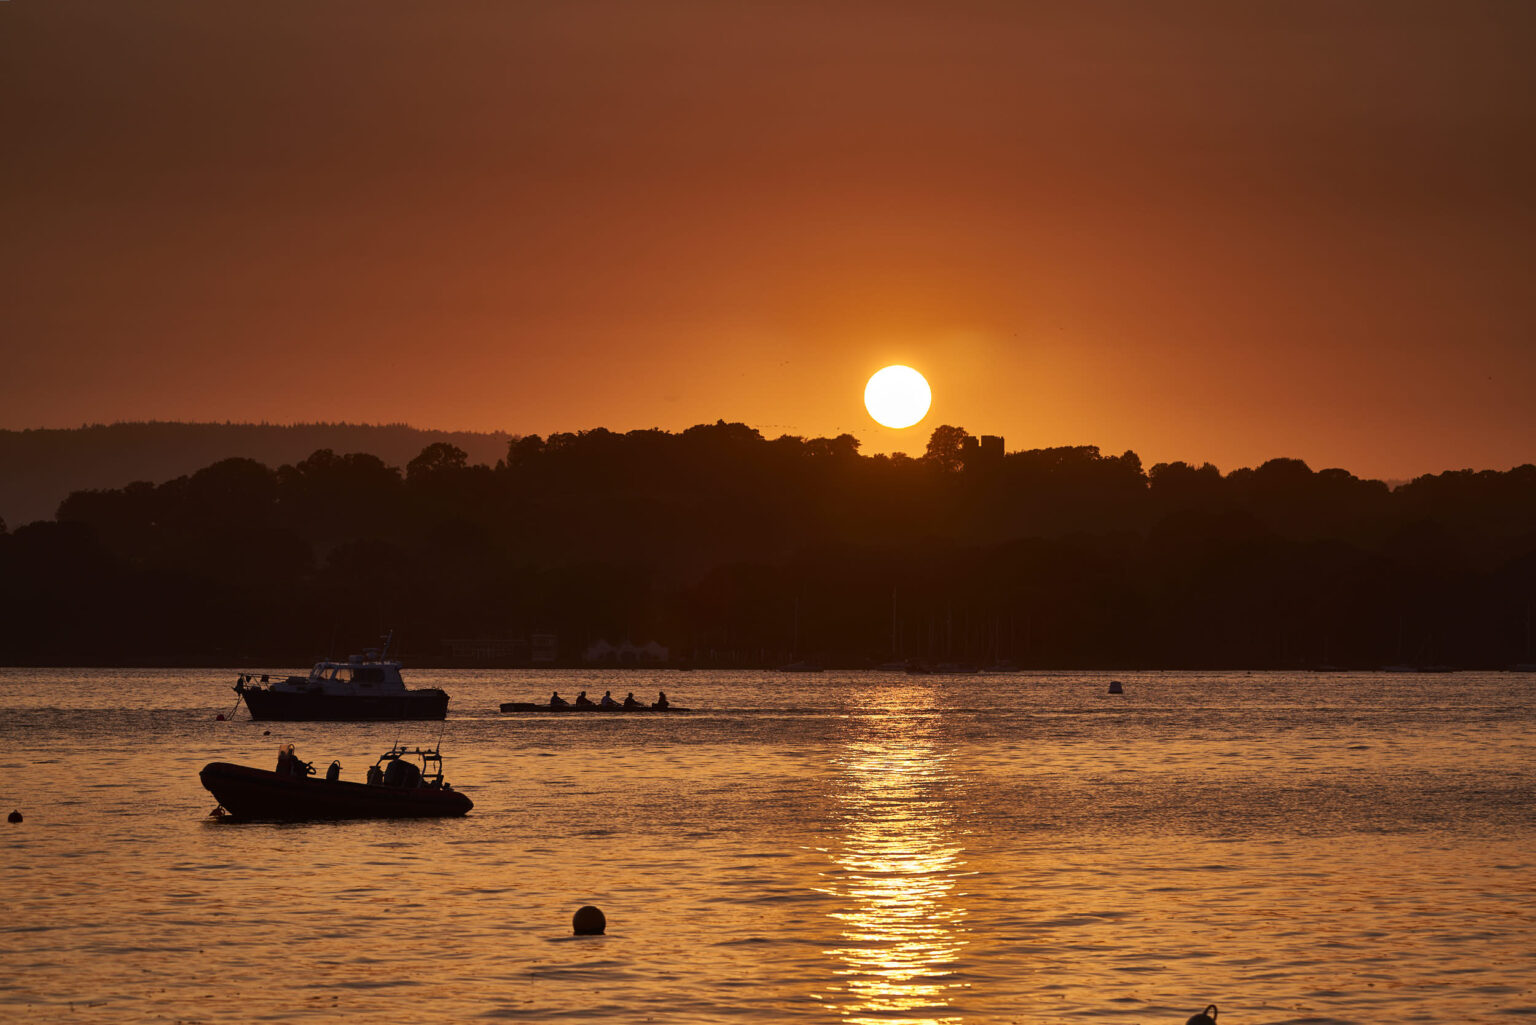 The sun setting over Lympstone Harbour